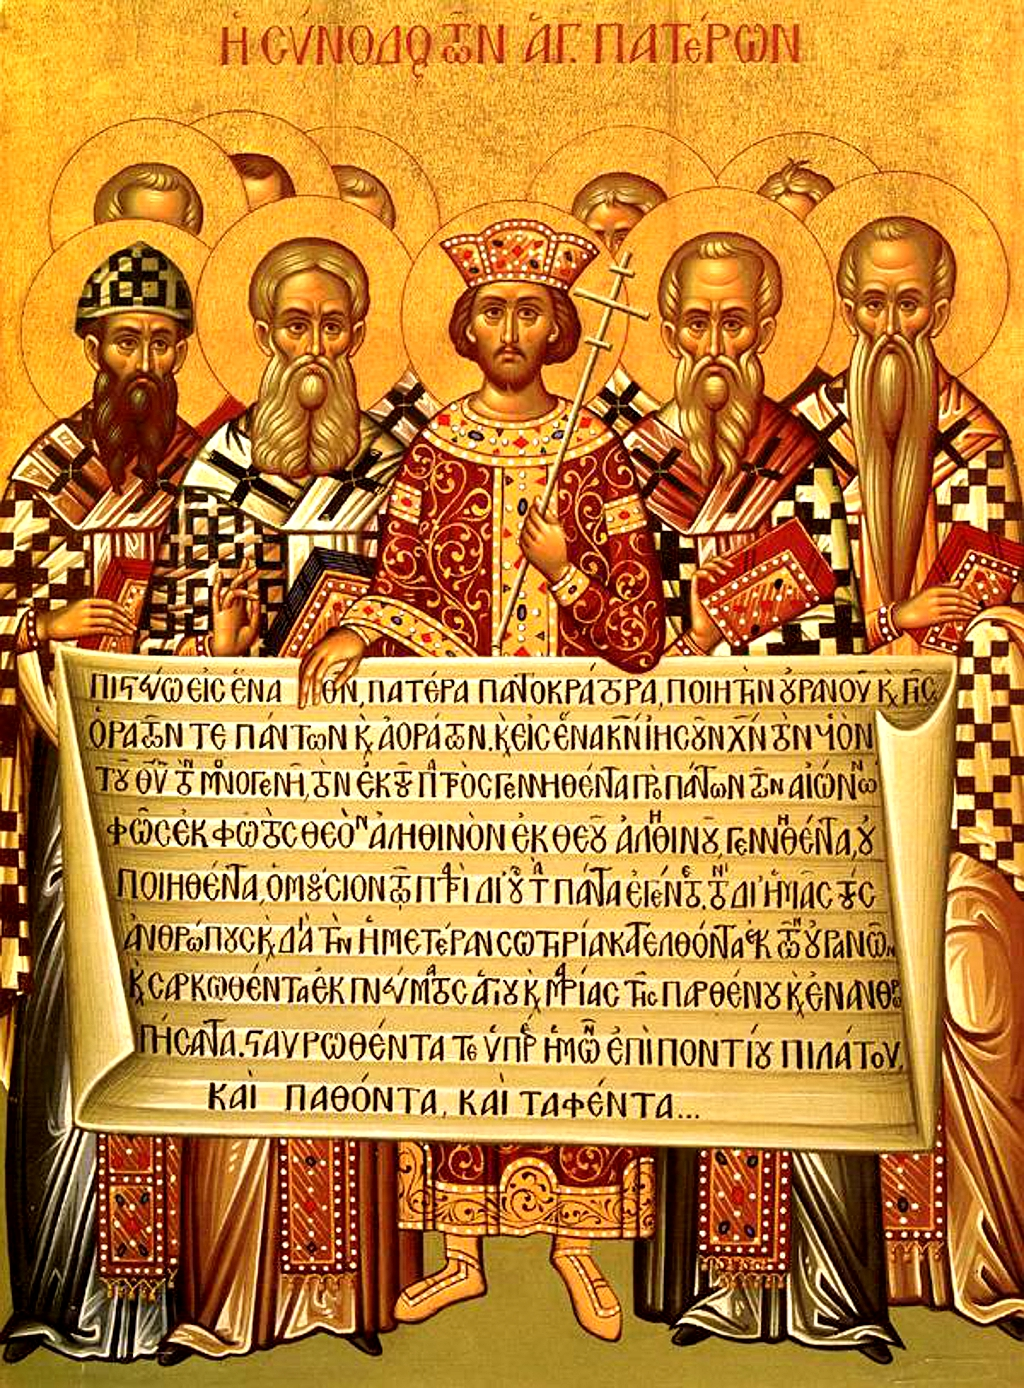 http://upload.wikimedia.org/wikipedia/commons/3/31/Nicaea_icon.jpg